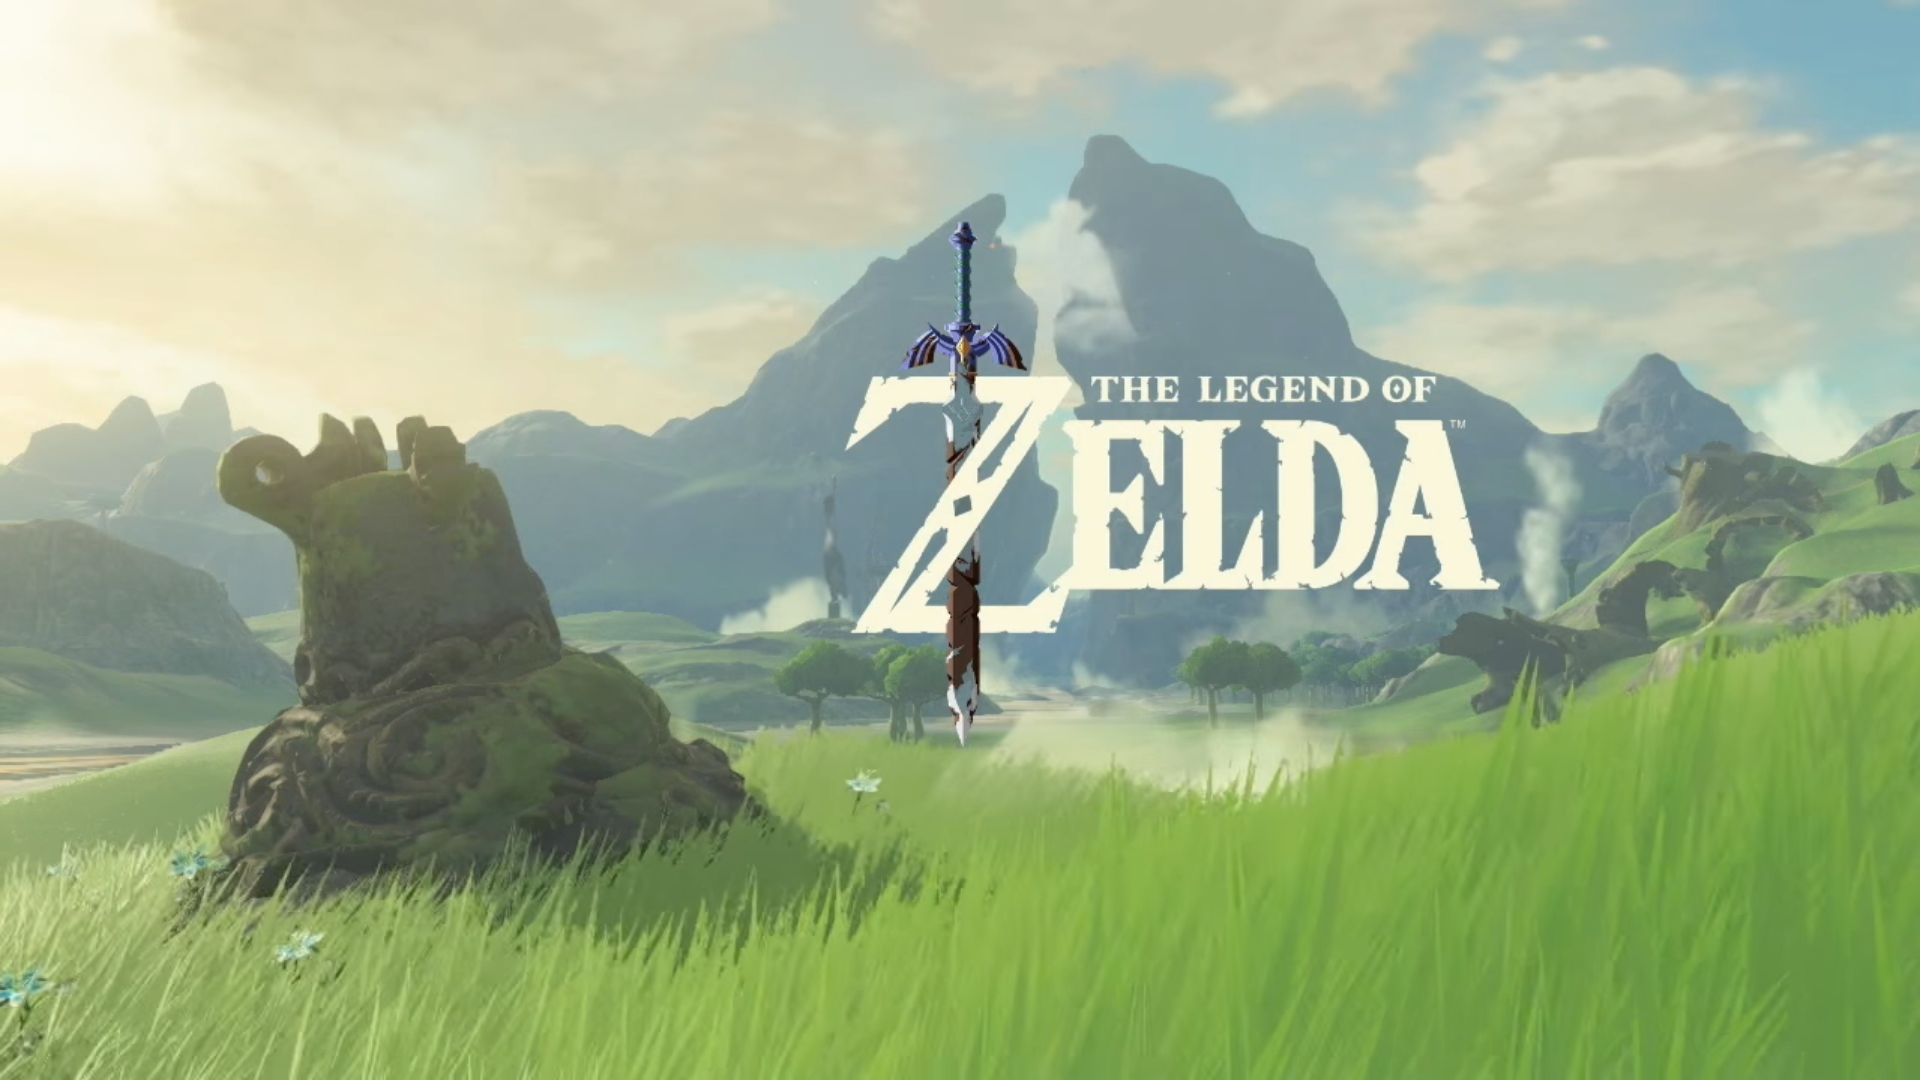 the legend of zelda: breath of the wild wallpapers - album on imgur